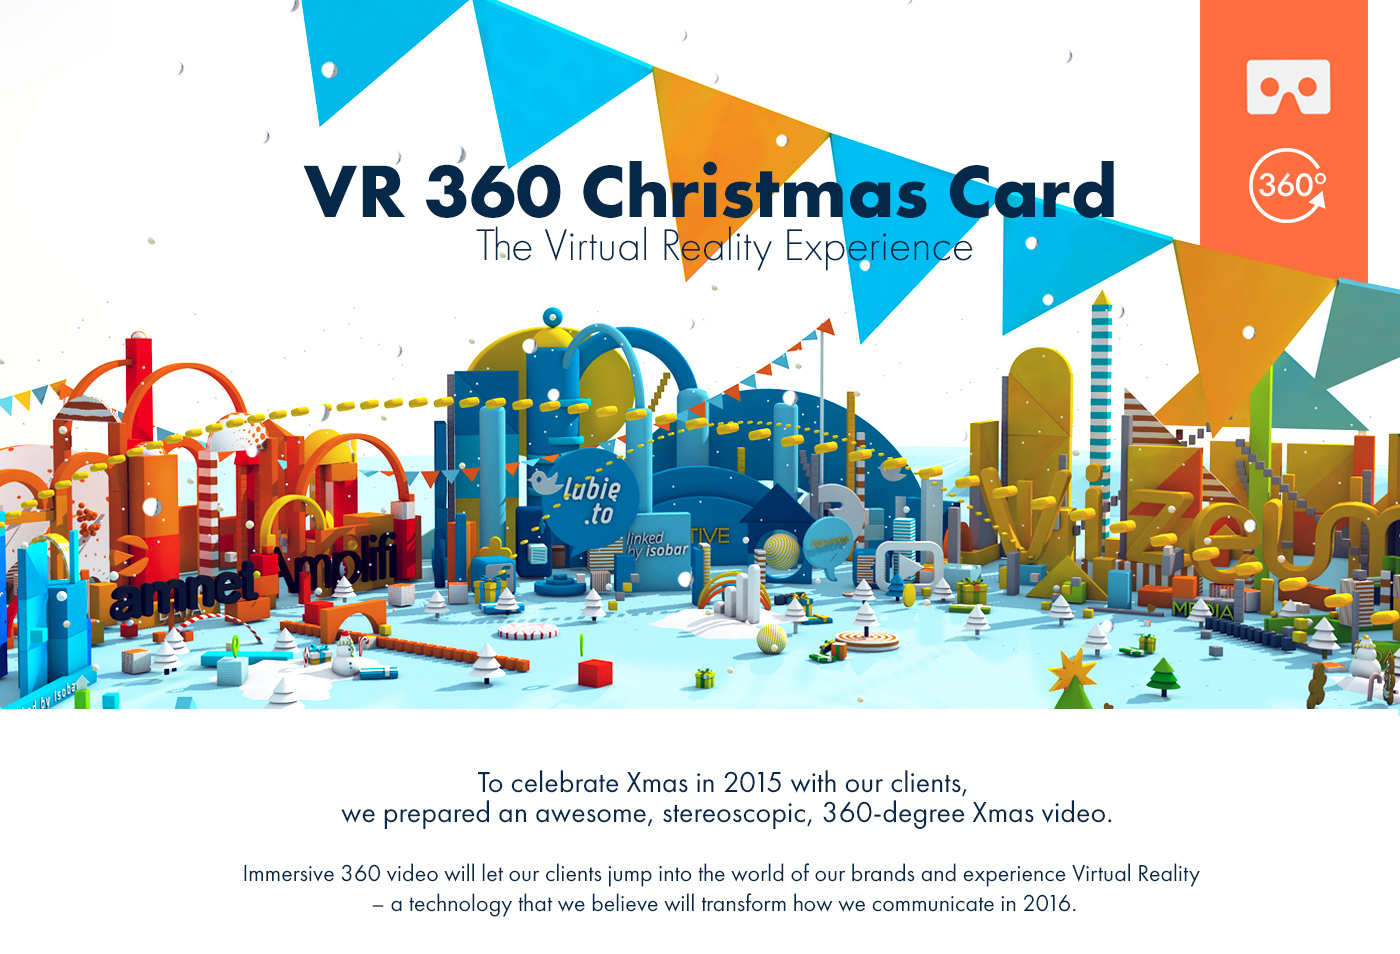 VR 360 Christmas Card on Behance